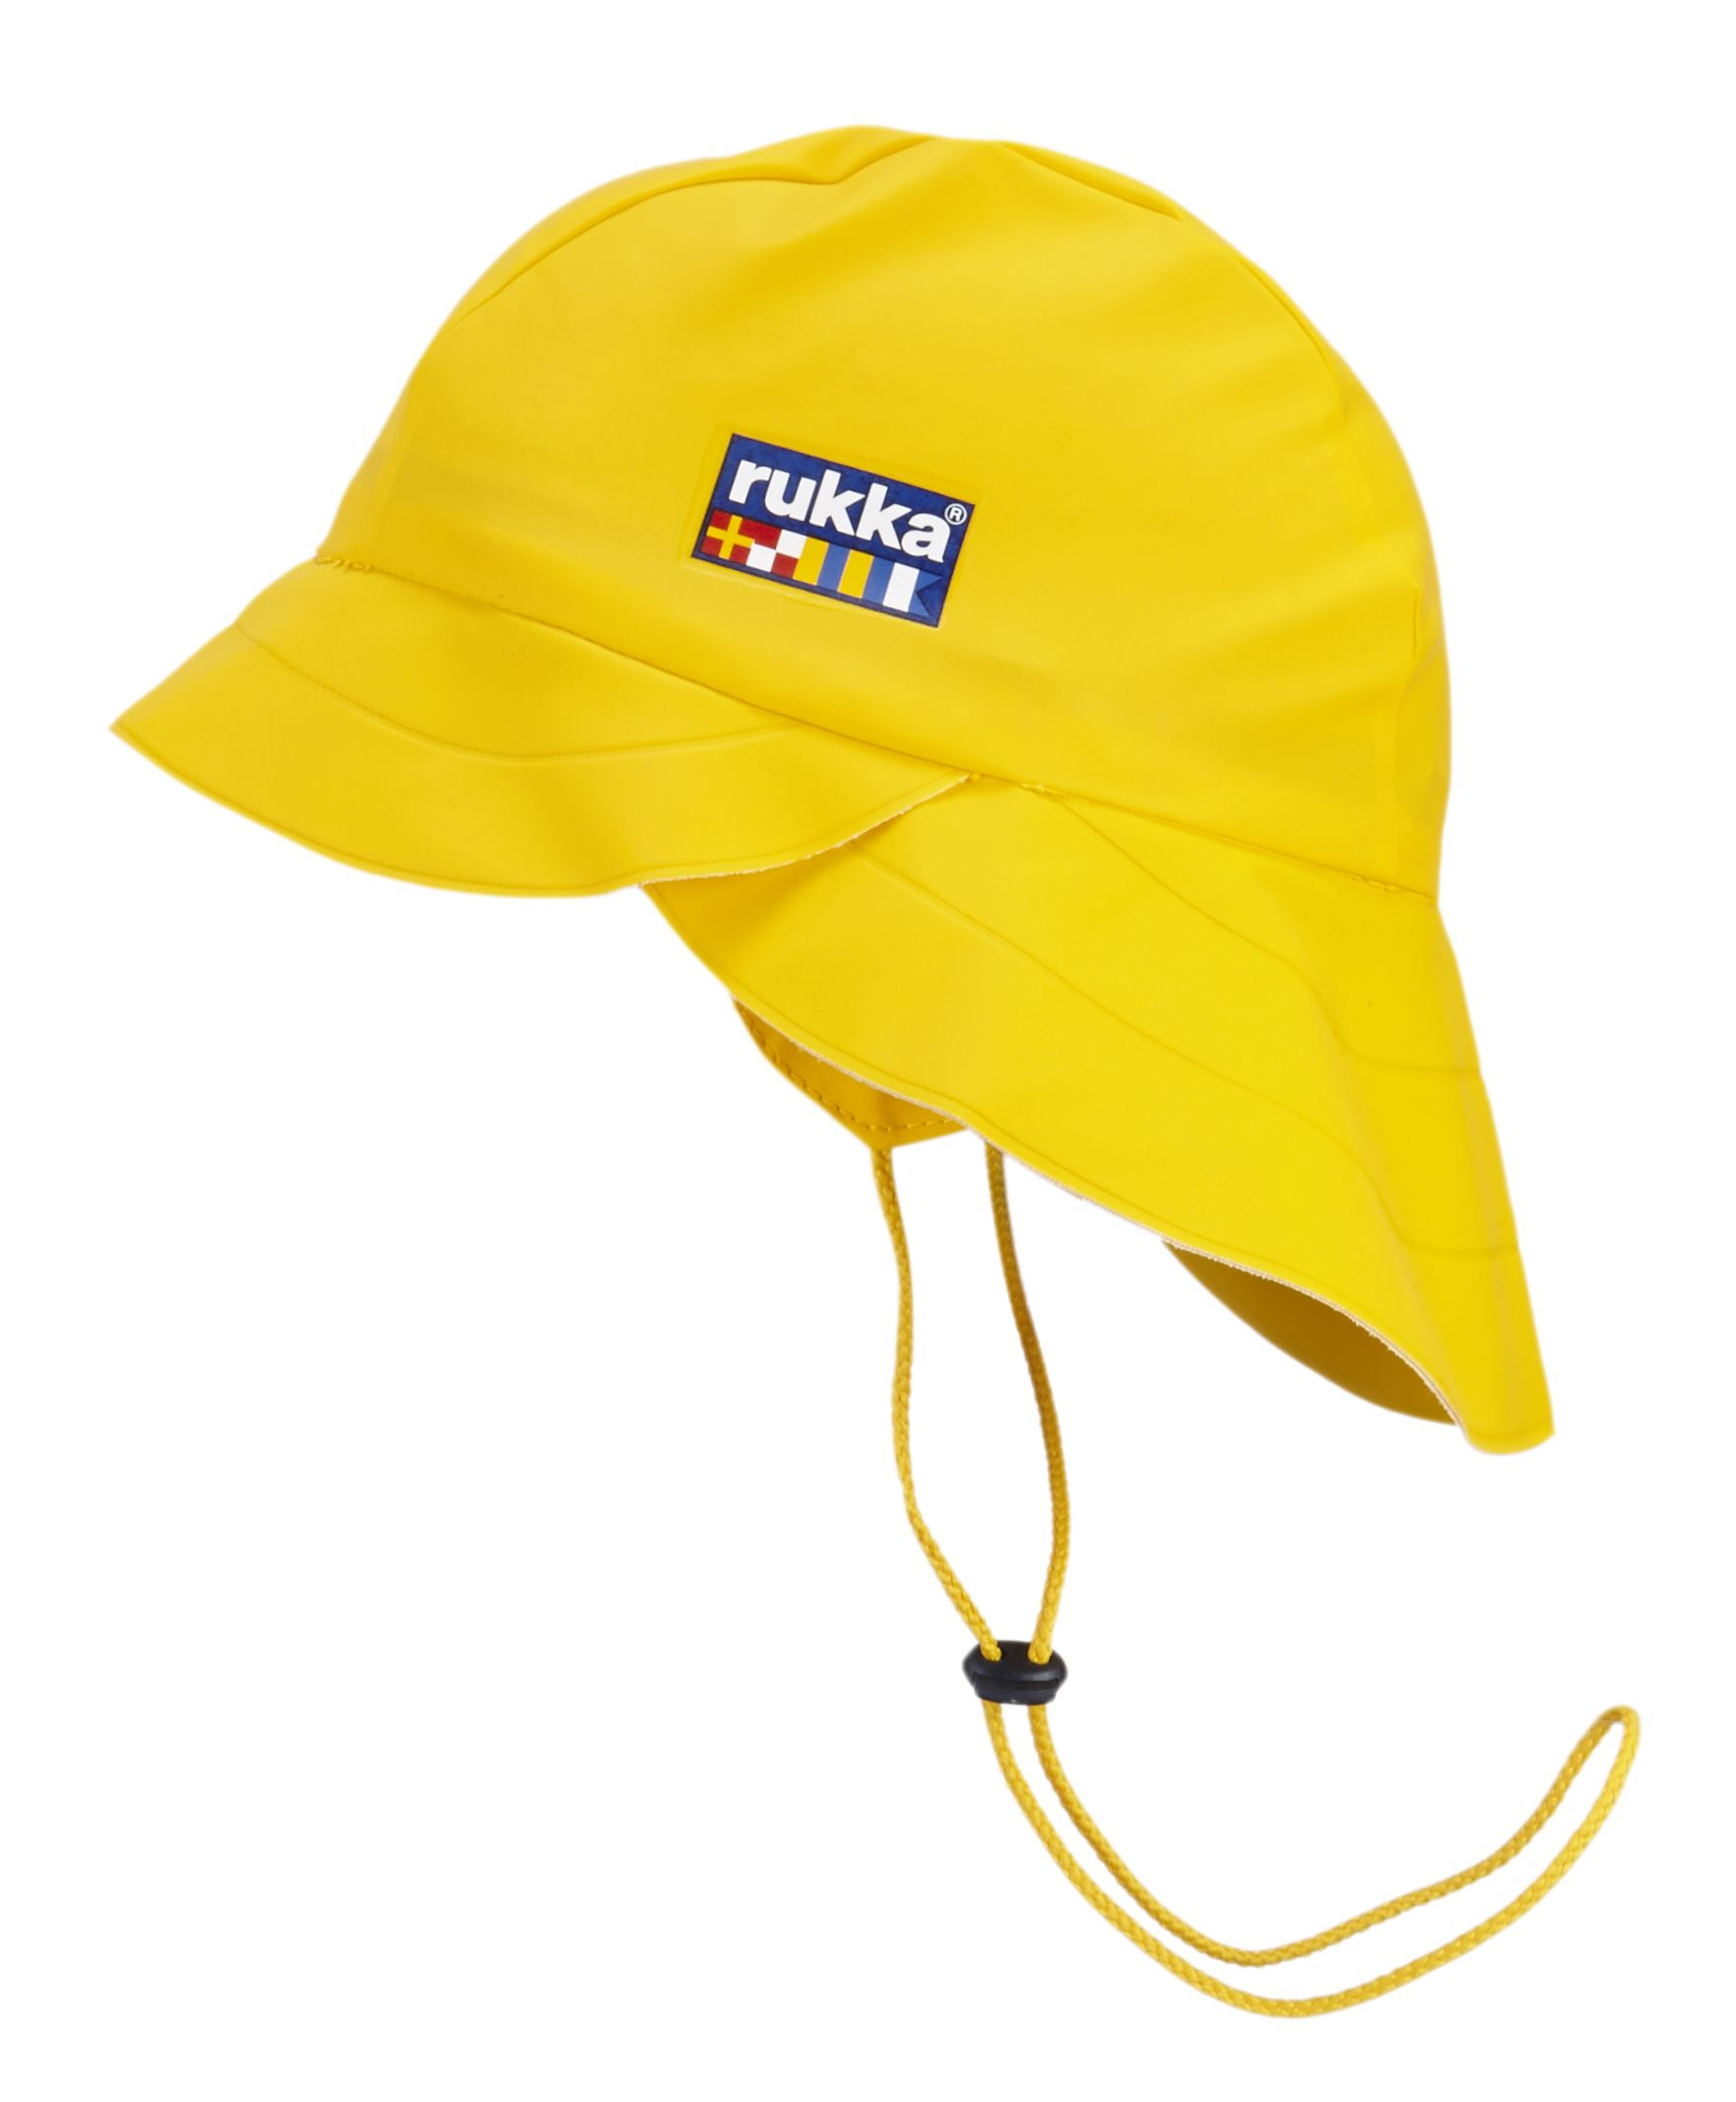 Rukka kids waterproof souwester rain hat Yellow Finland ... 1b8f0a35aa15